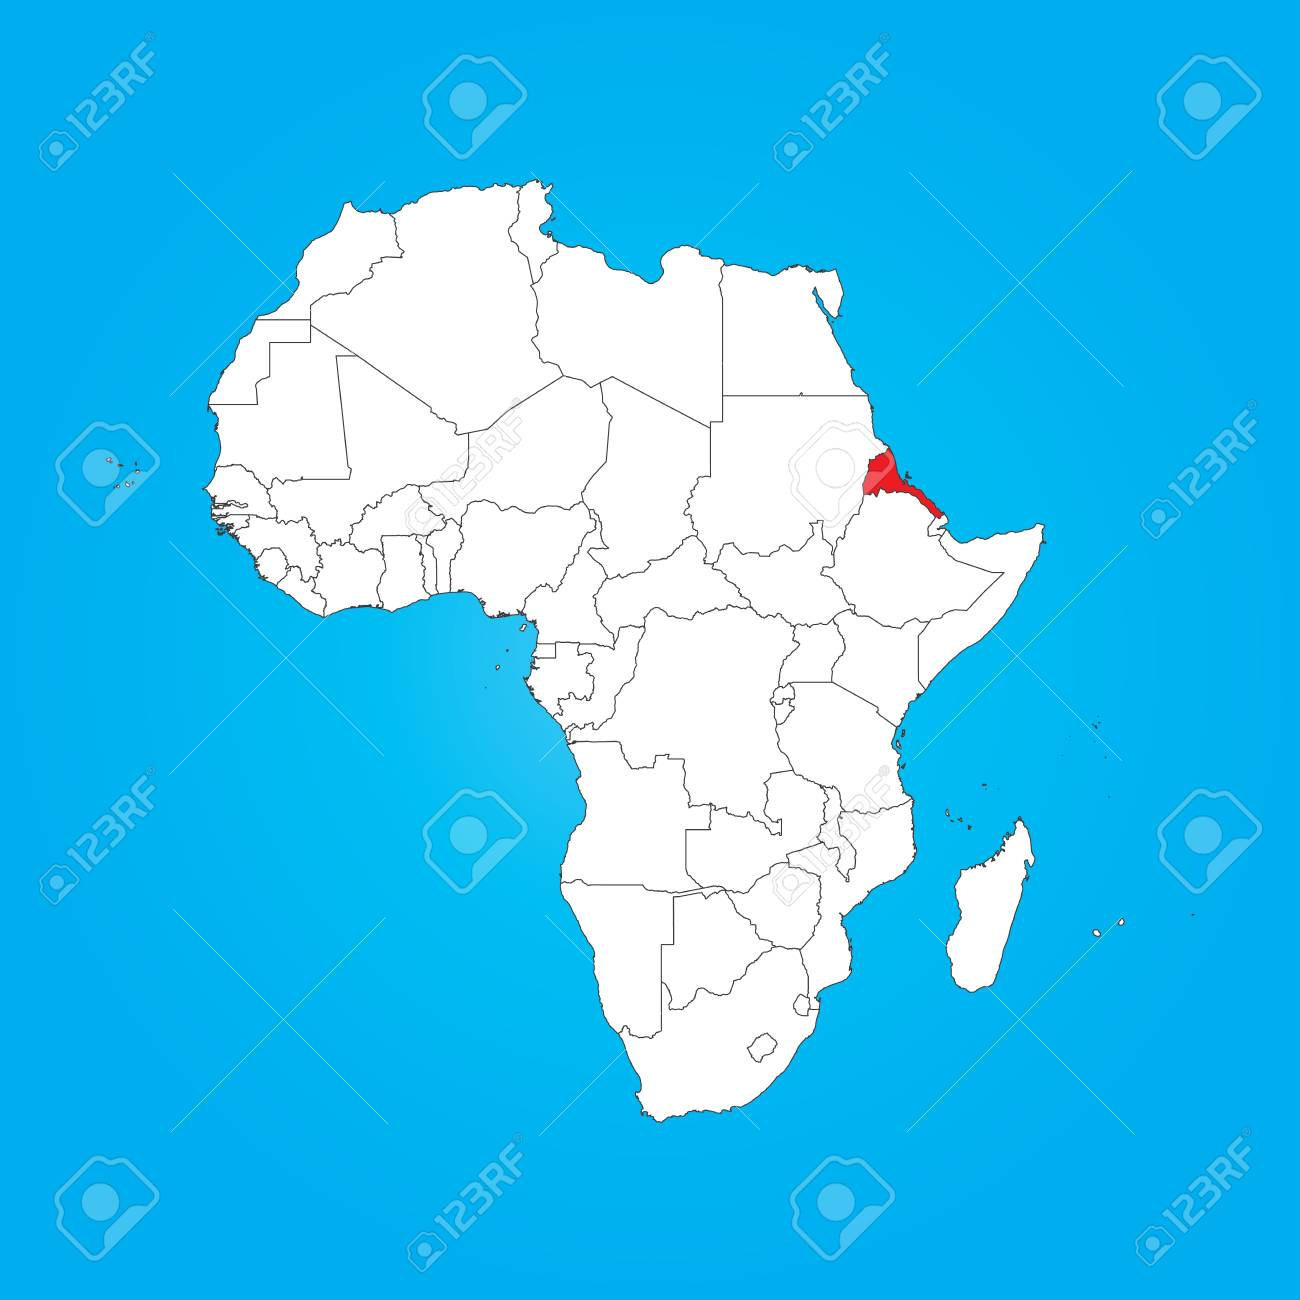 Map Of Africa Eritrea.A Map Of Africa With A Selected Country Of Eritrea